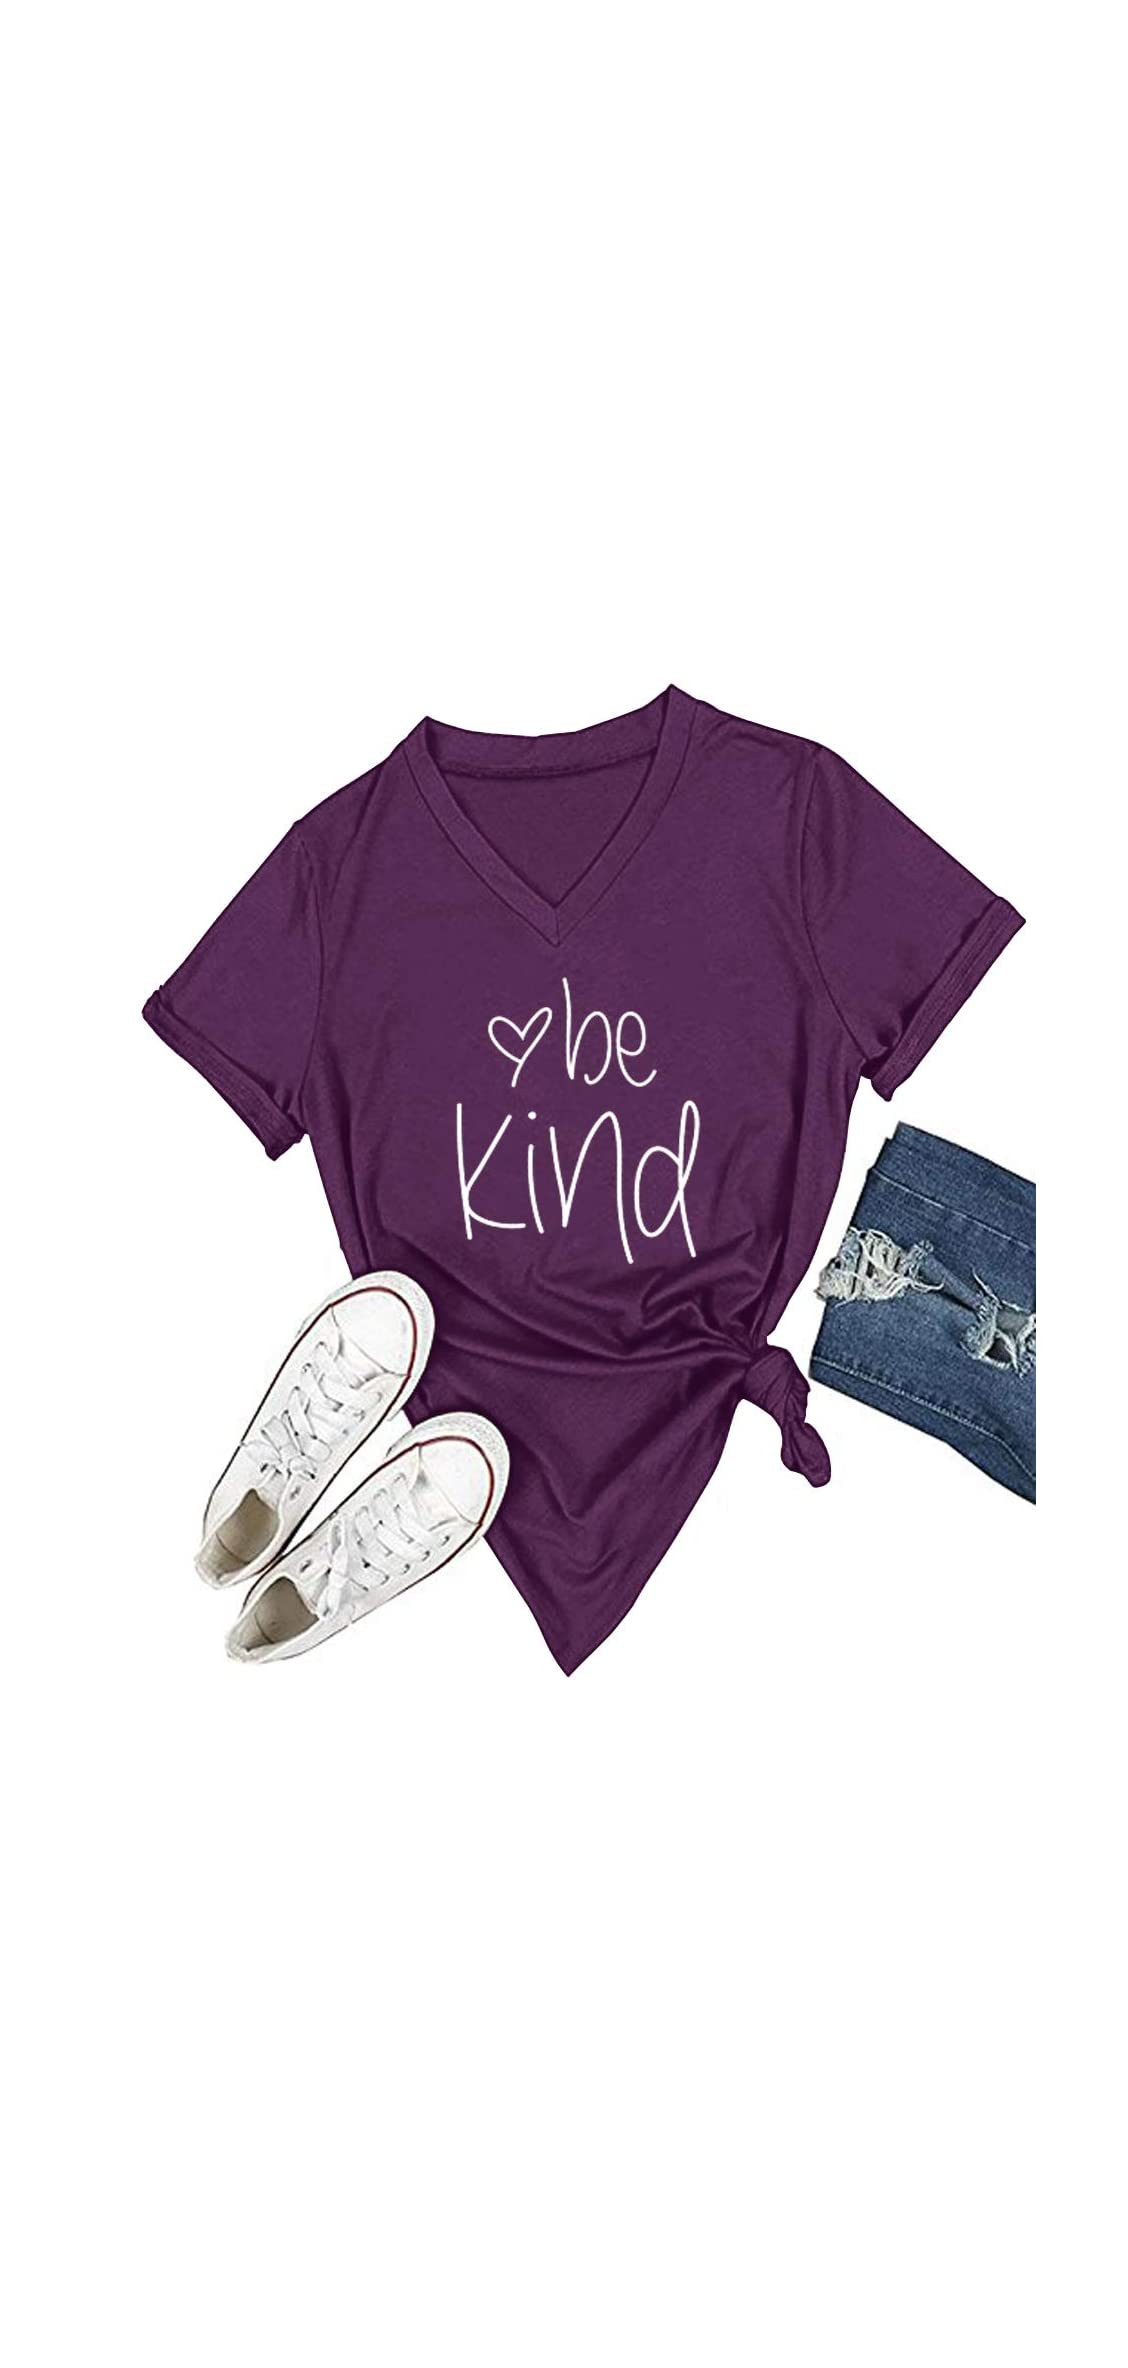 Womens T Shirt Casual Cotton Short Sleeve V-neck Graphic